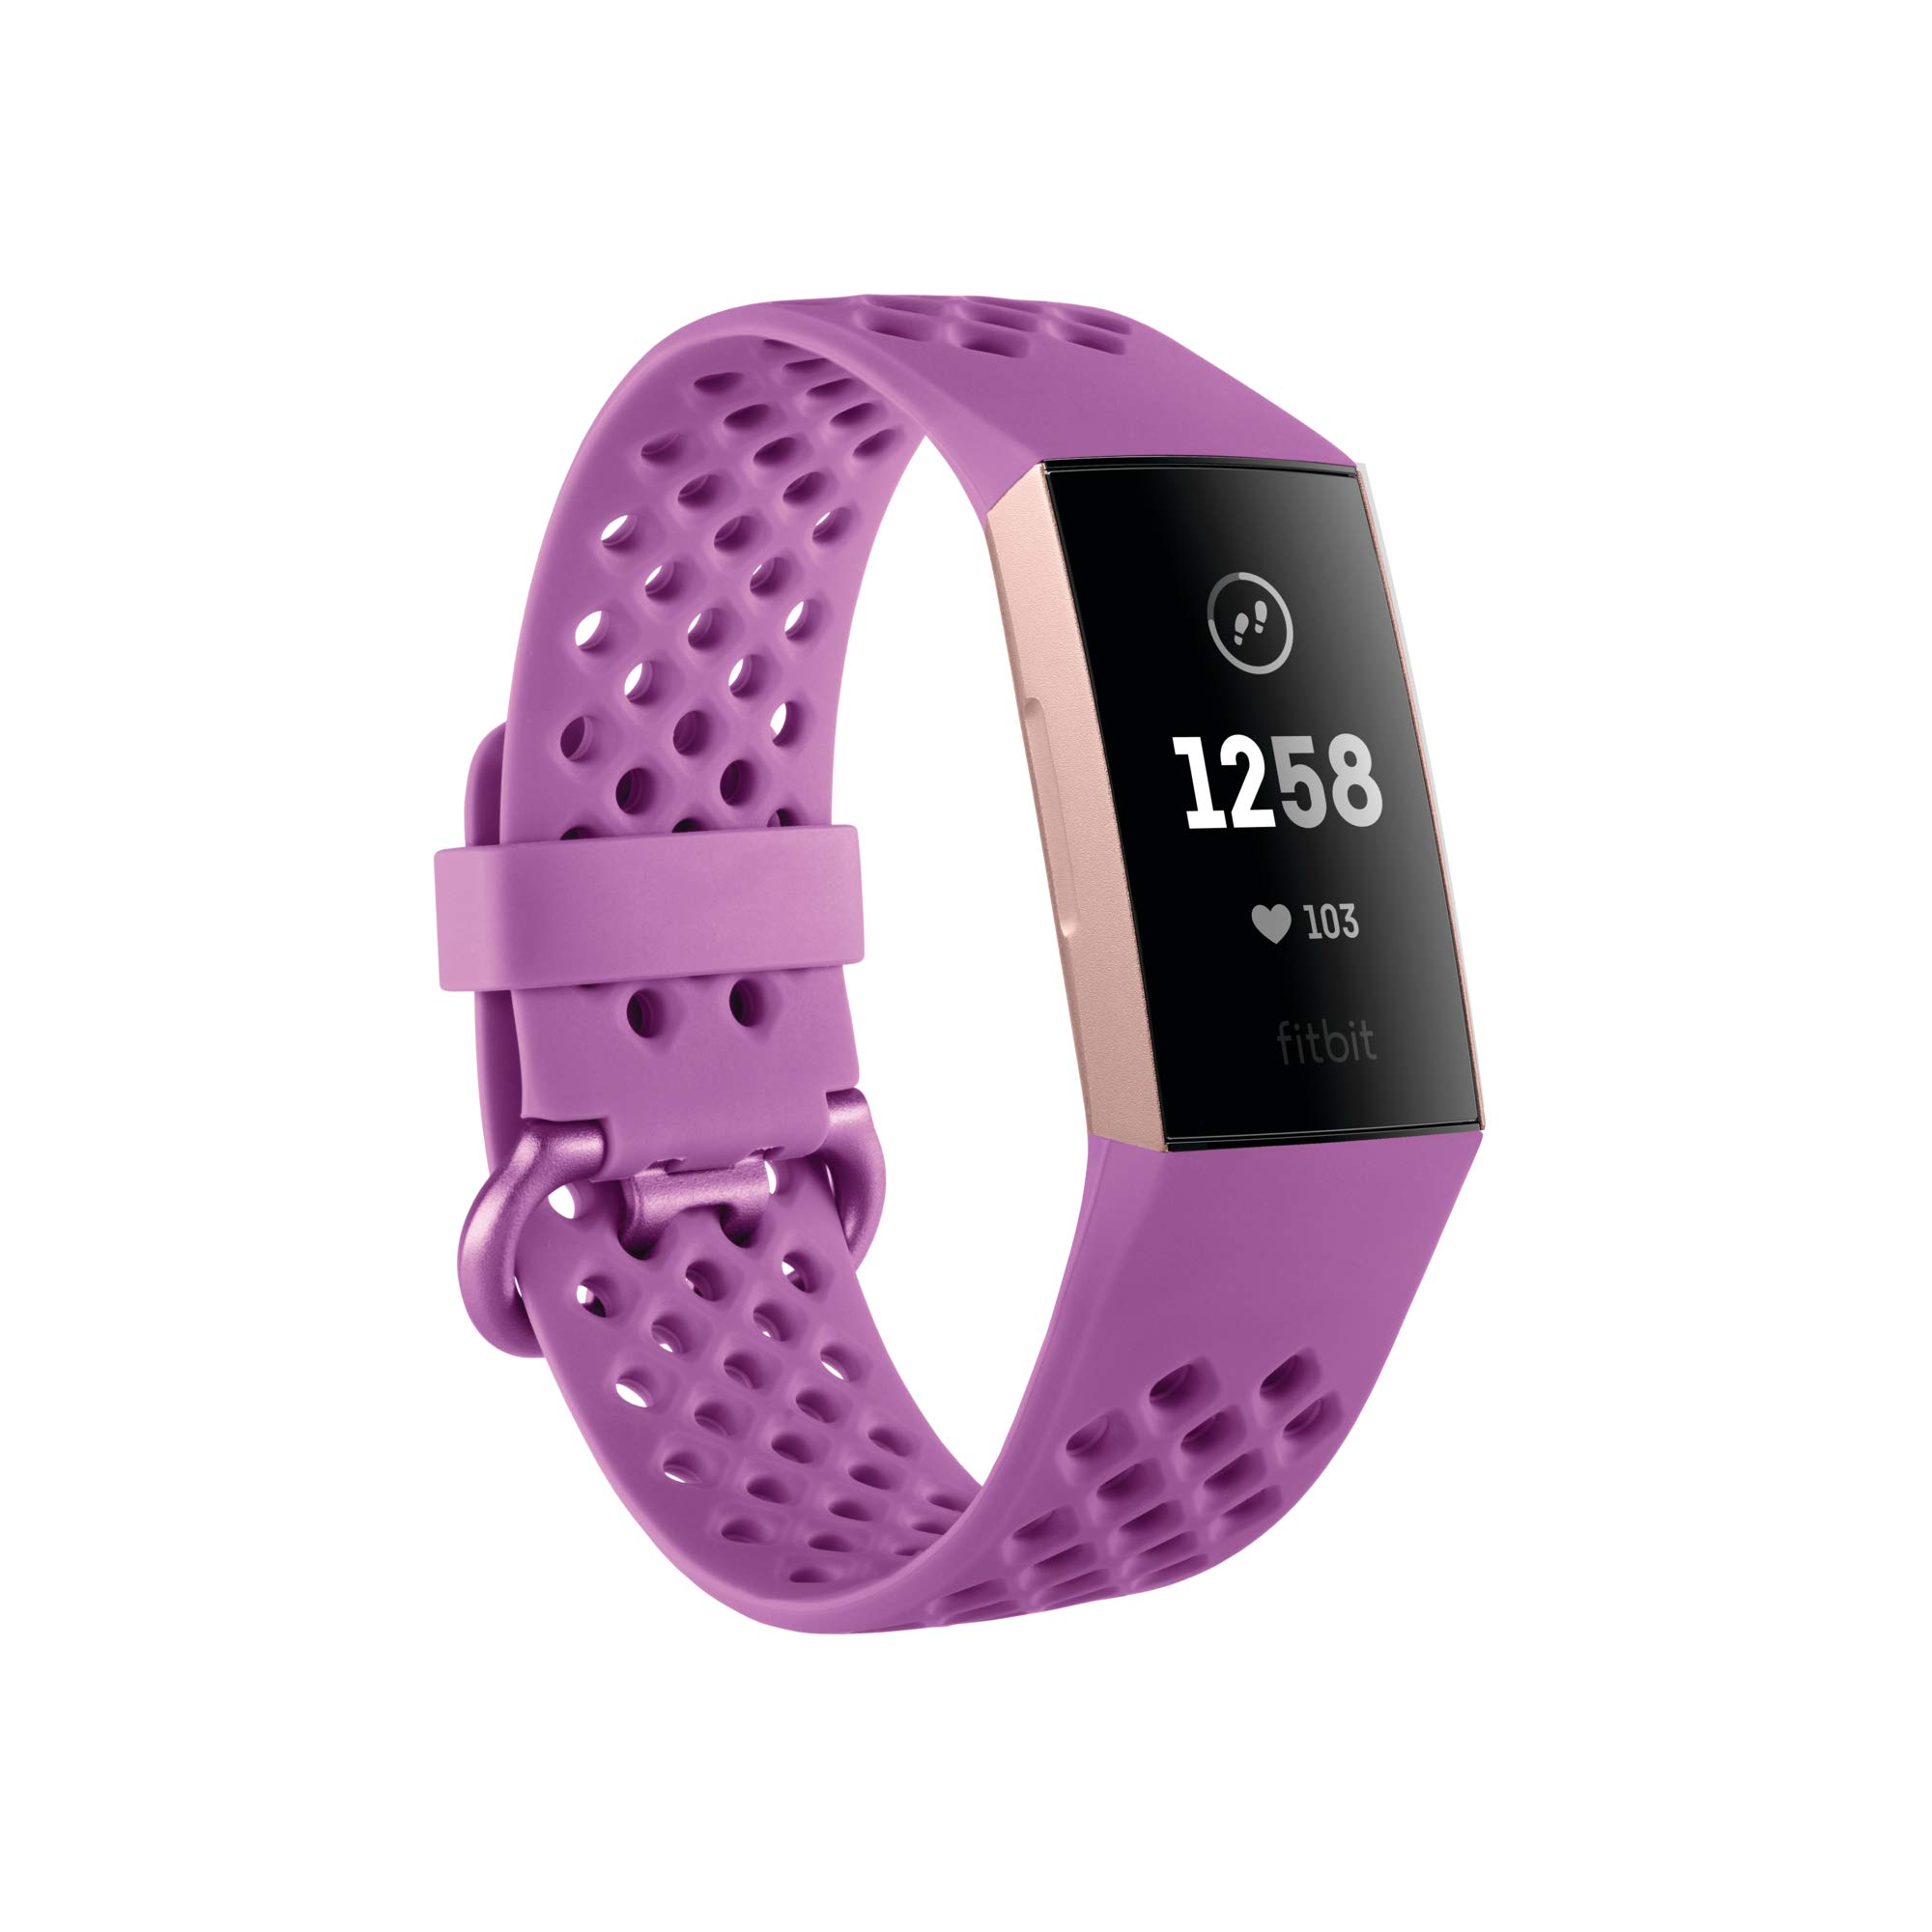 Fitbit Charge 3 Fitness Activity Tracker, Rose Gold/Berry, One Size (S & L Bands Included) by Fitbit